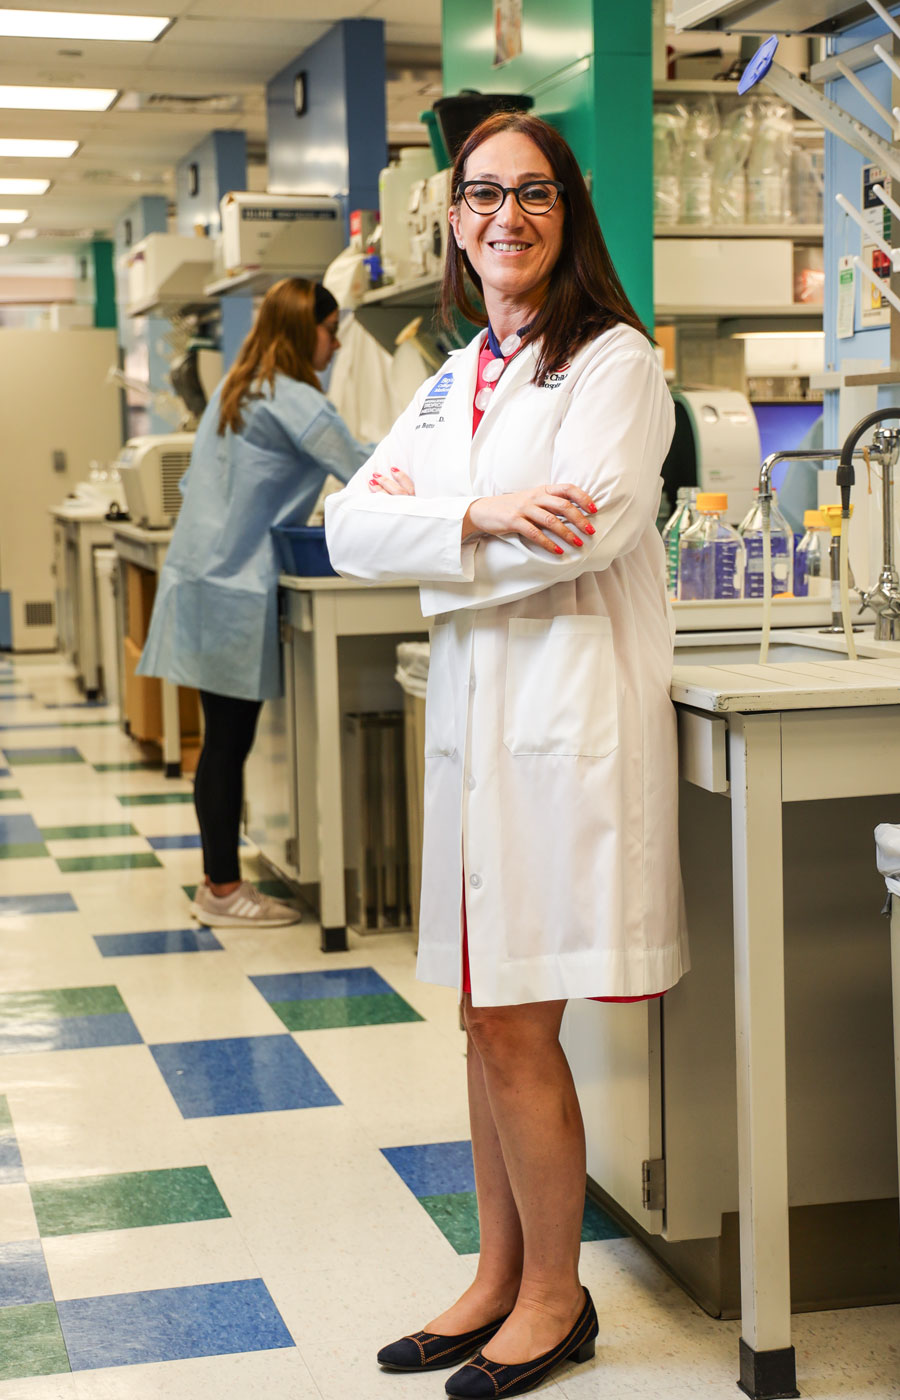 Dr. Maria Bottazzi, NSTM associate dean and professor, Distinguished Professor of Biology at Baylor University, and co-director of the Texas Children's Hospital Center for Vaccine Development